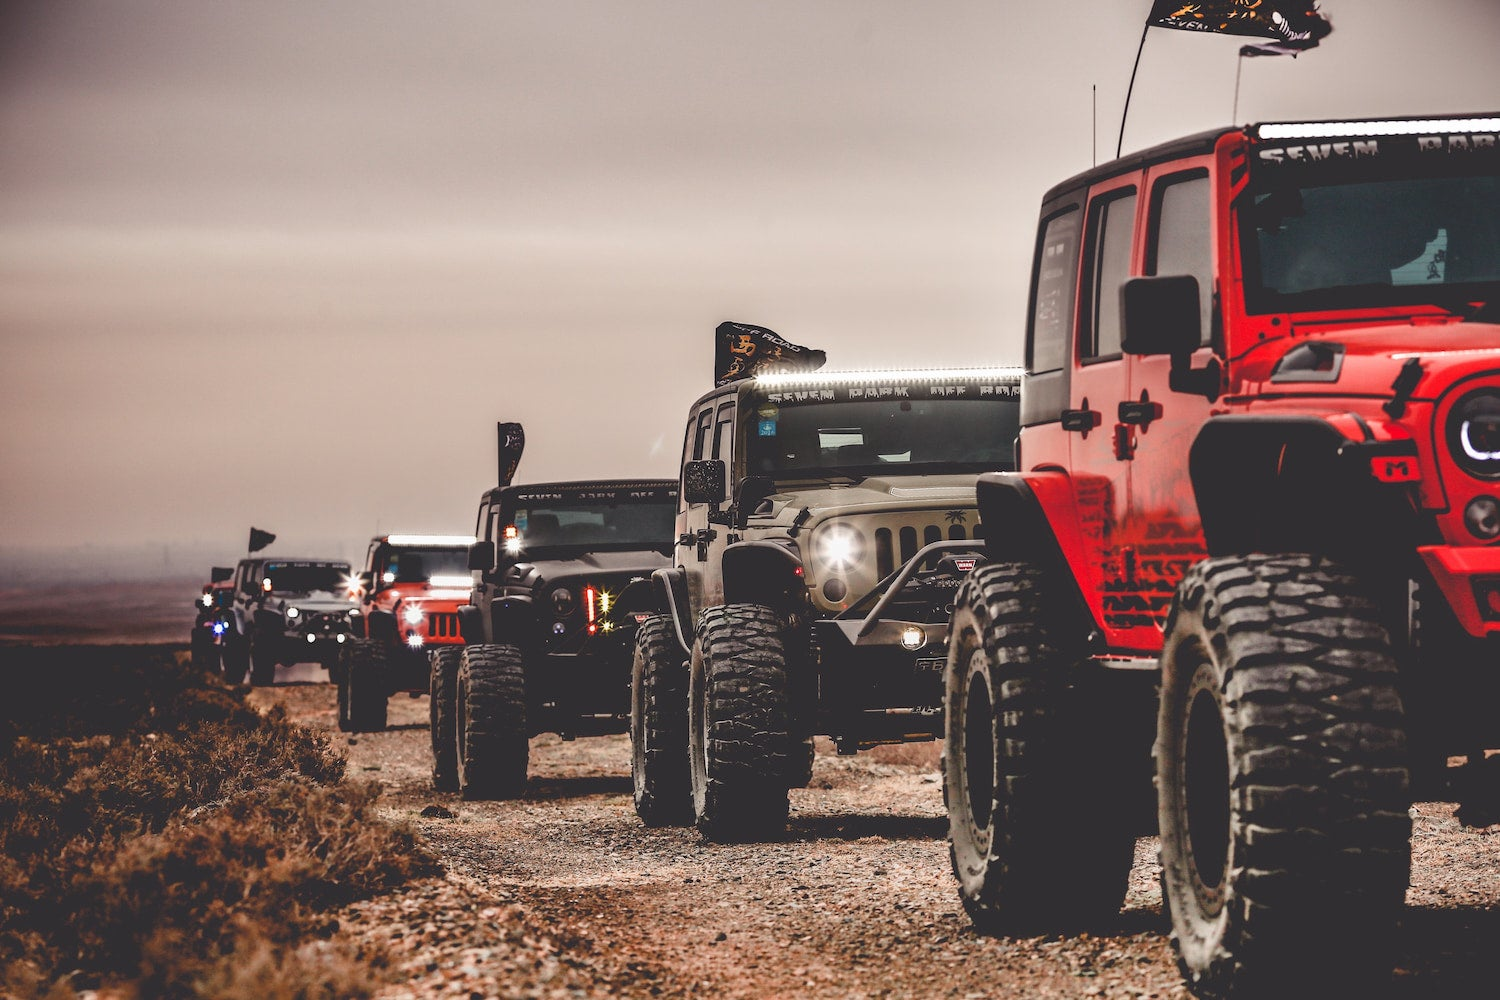 line of jeeps on road